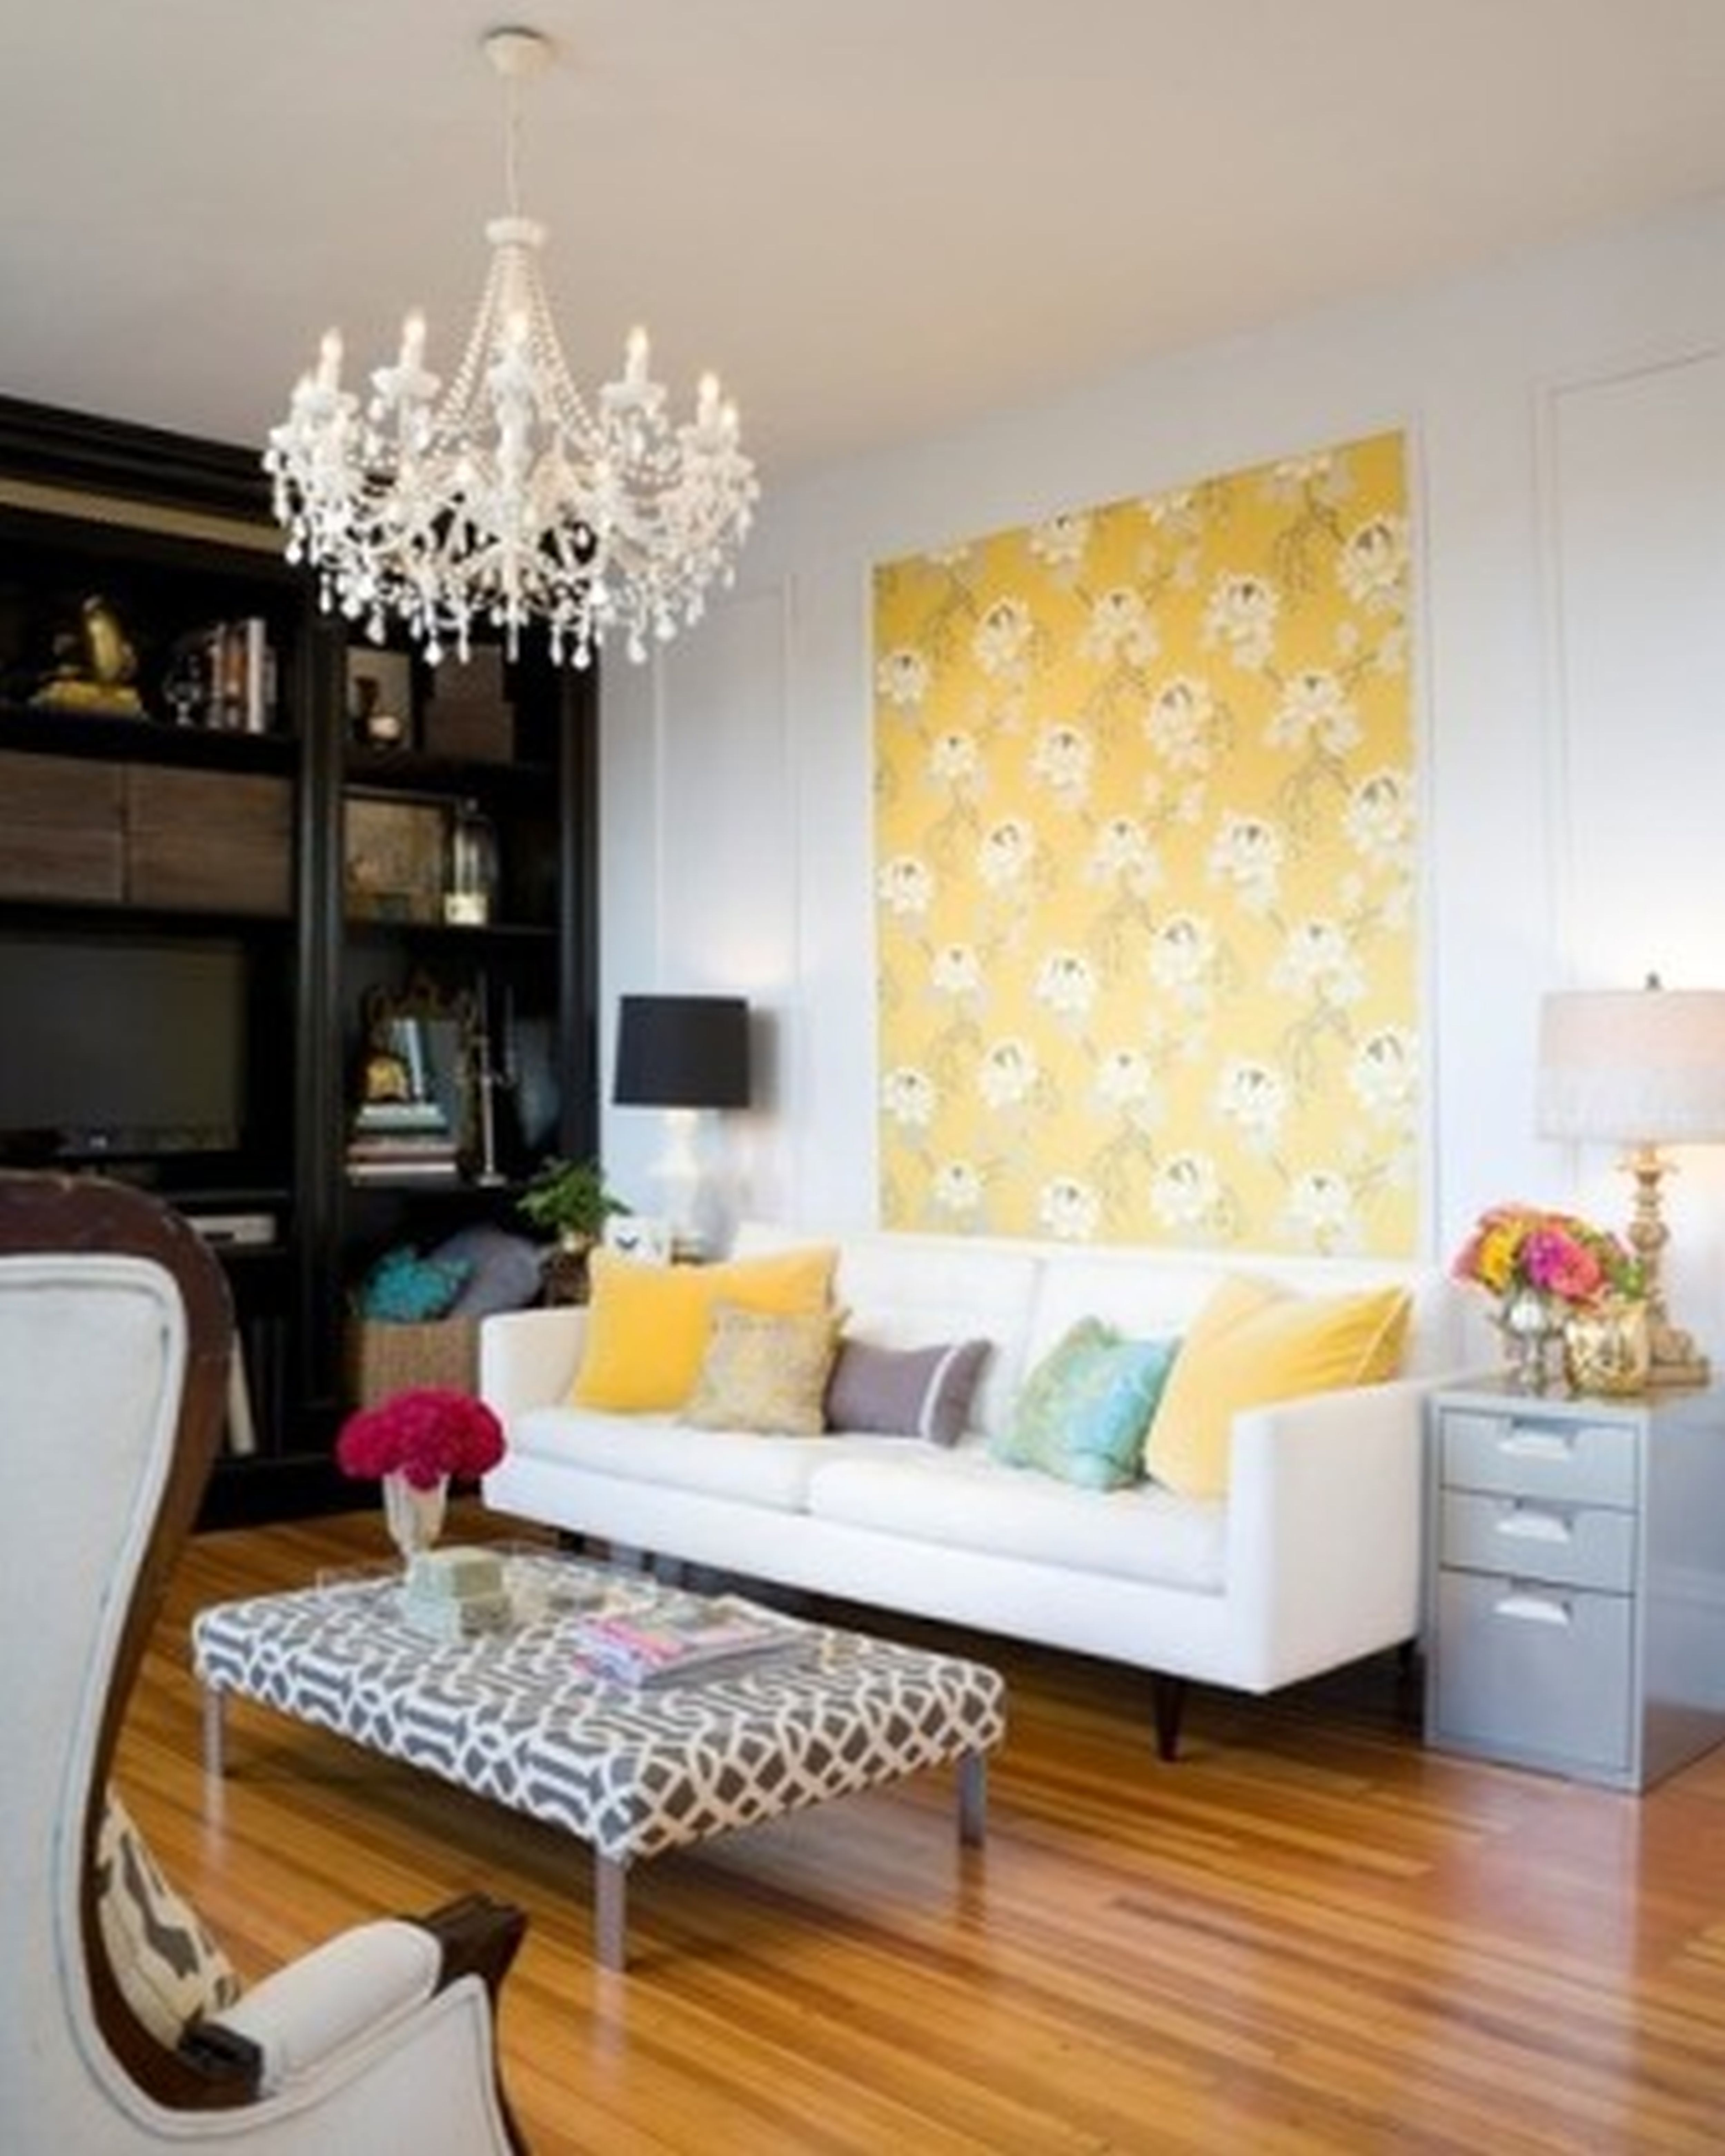 Fewer Headaches With Home Improvment Starts Here  Click Image Unique Living Room Simple Decorating Ideas Inspiration Design